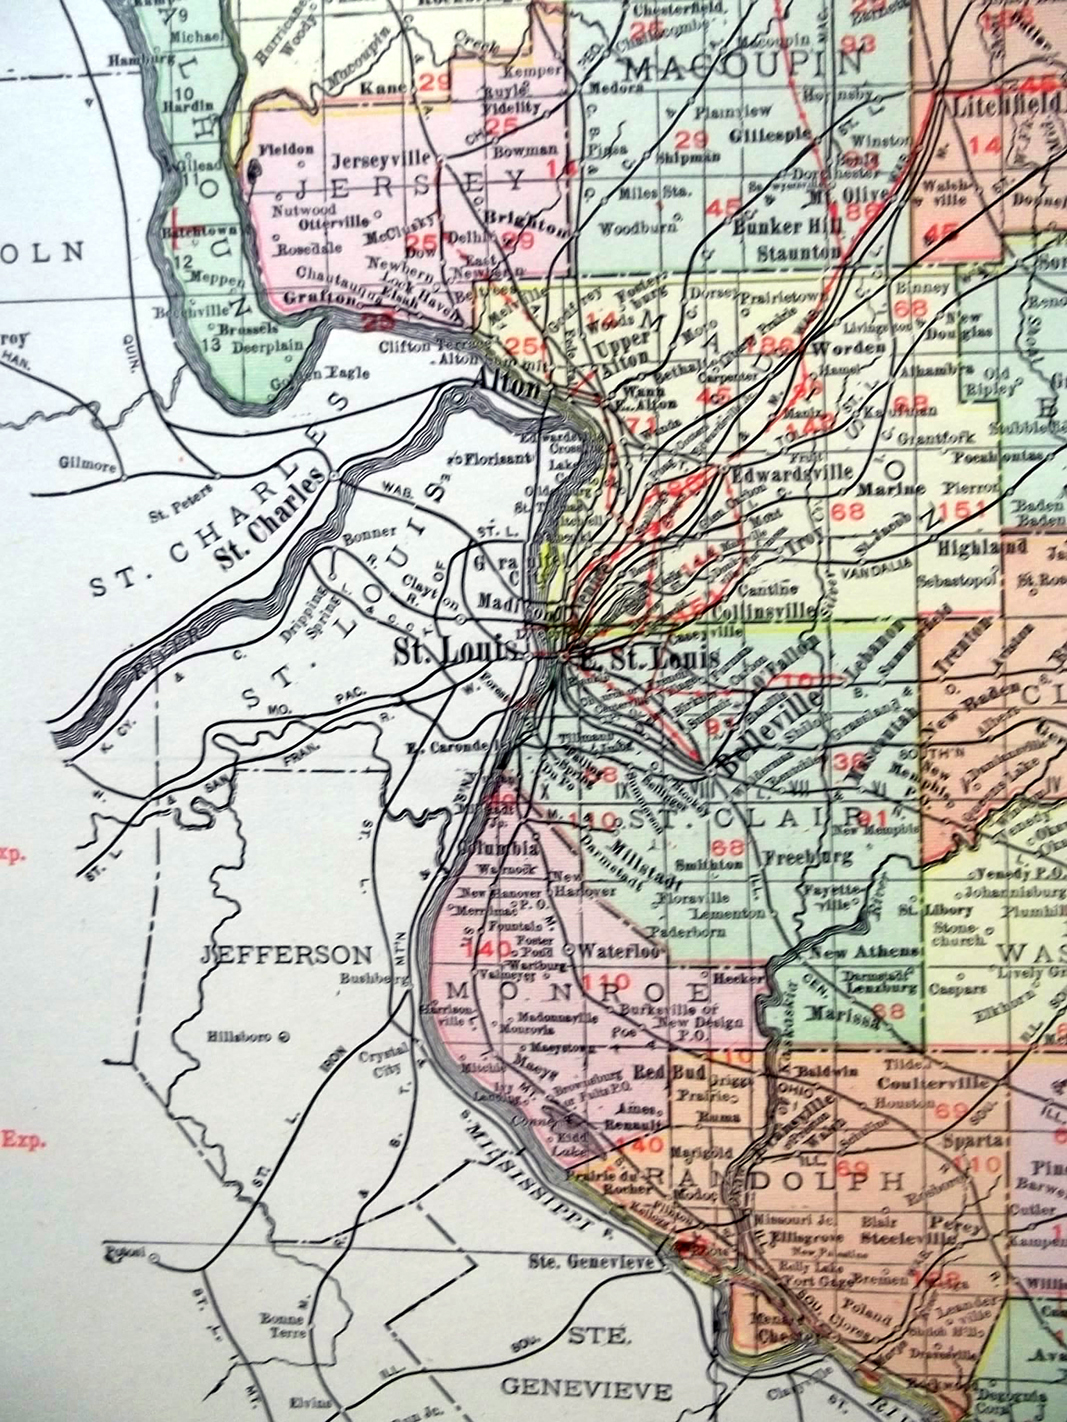 State of Missouri 1912 Rand McNally color Map w/ Railroads